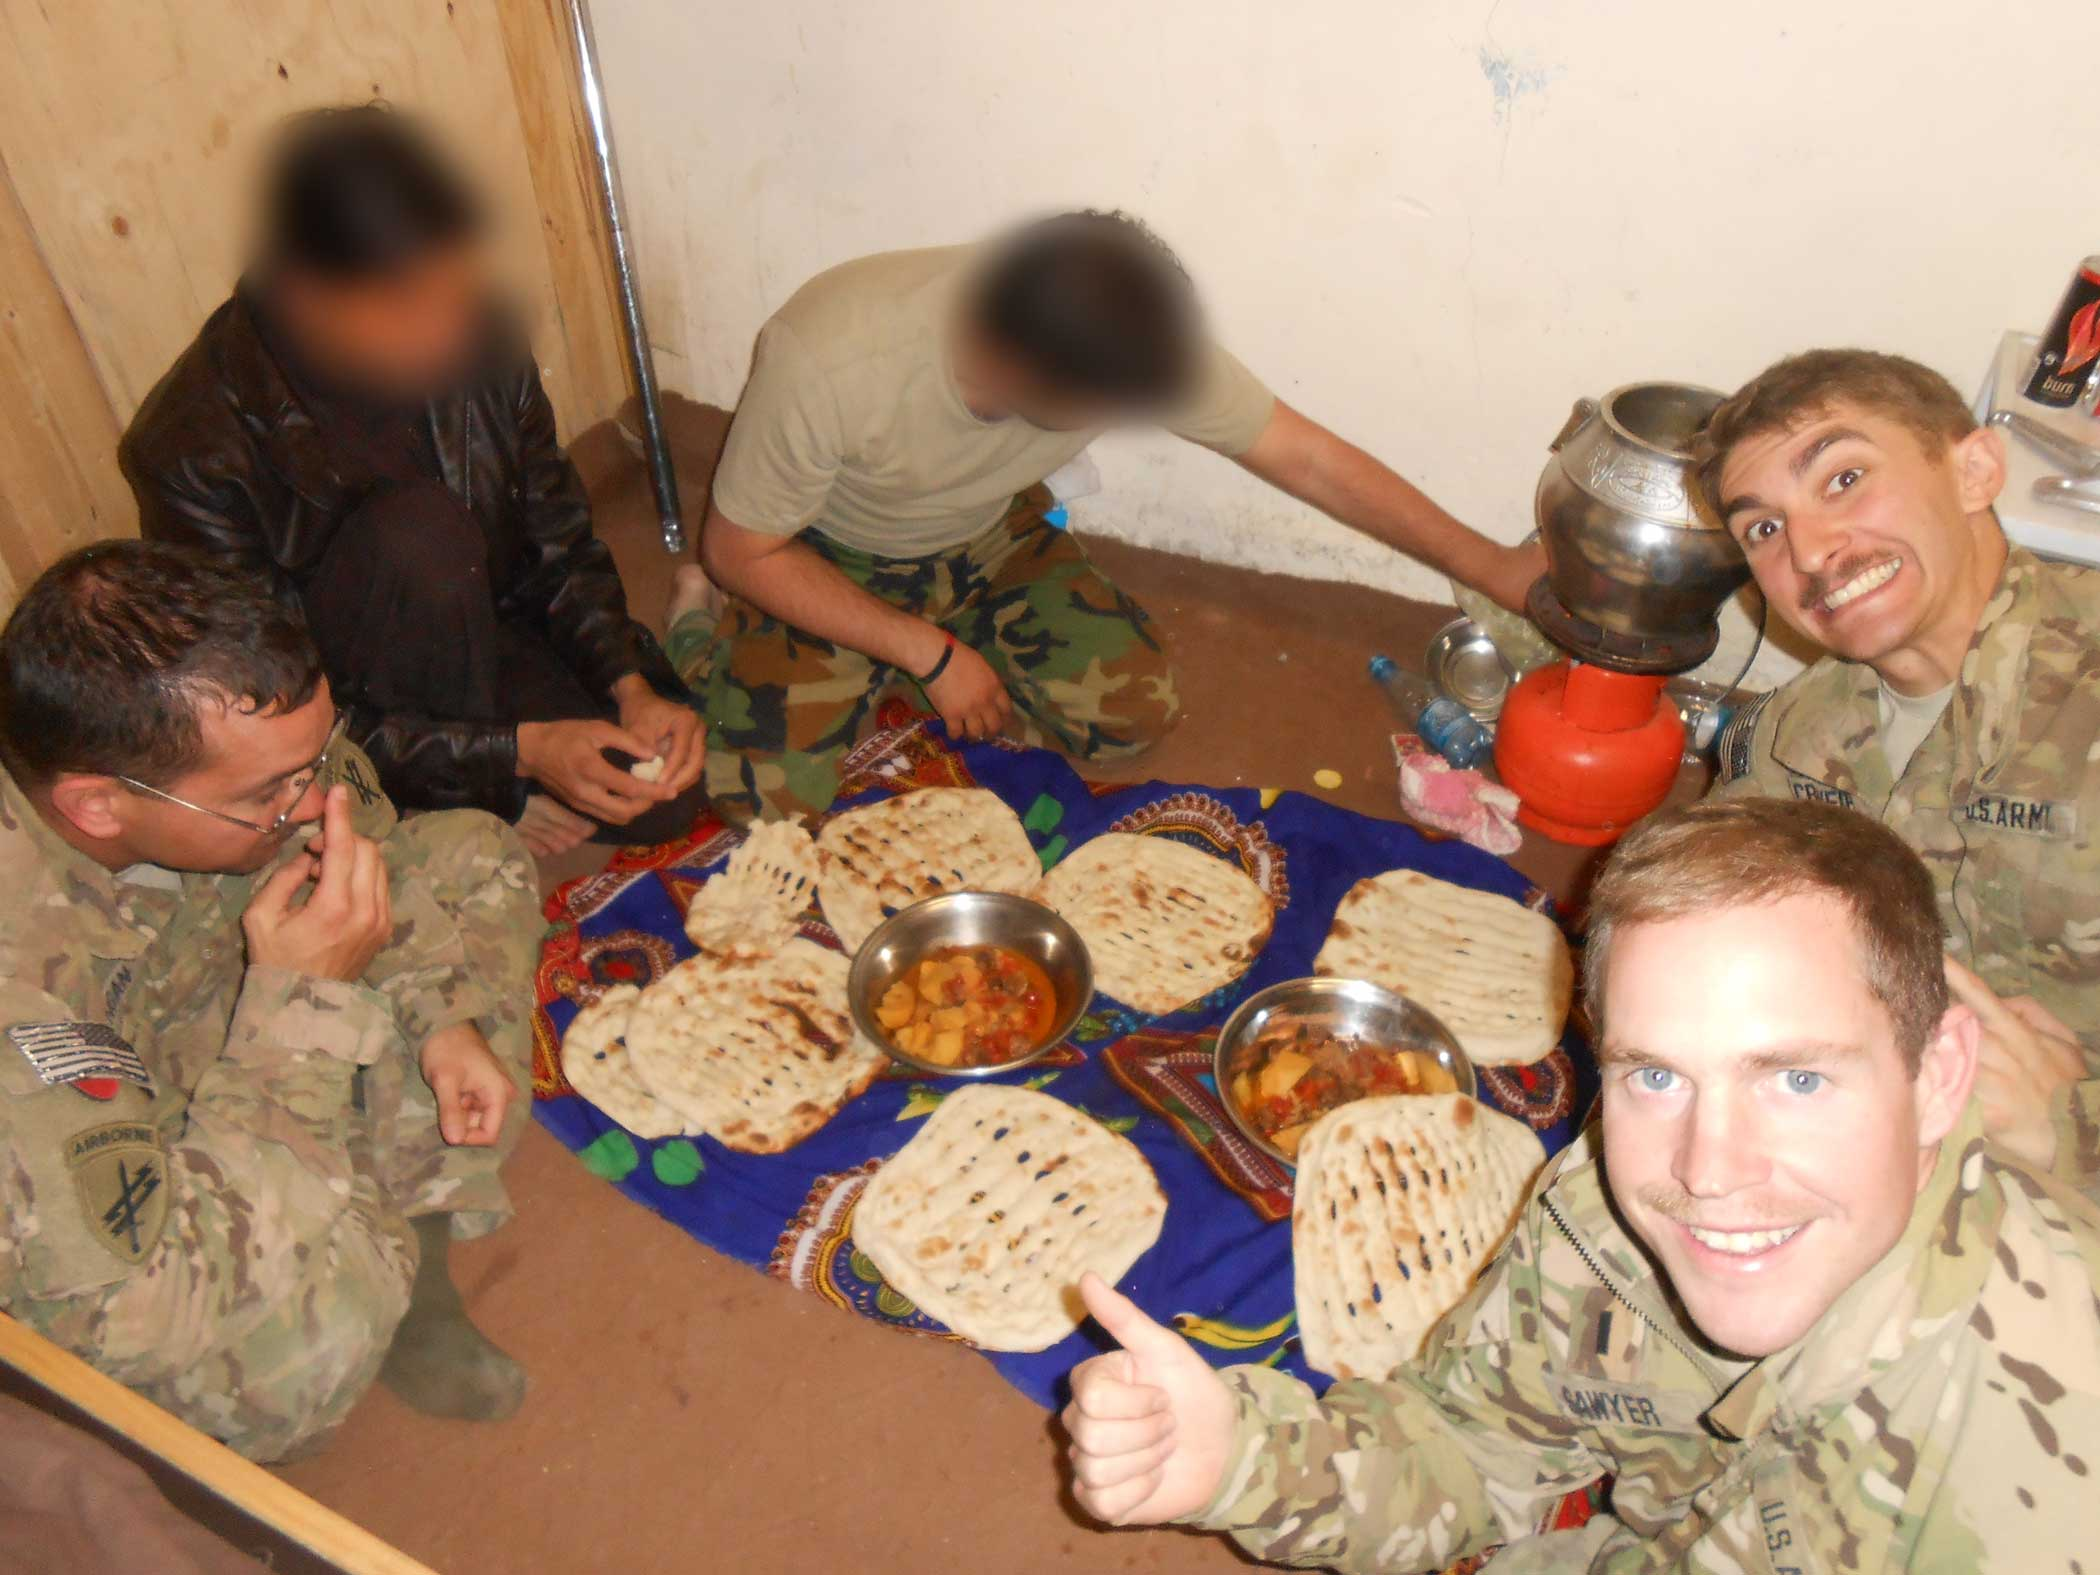 The author shares a meal with his civil affairs team and some Afghan friends. Courtesy of the author.